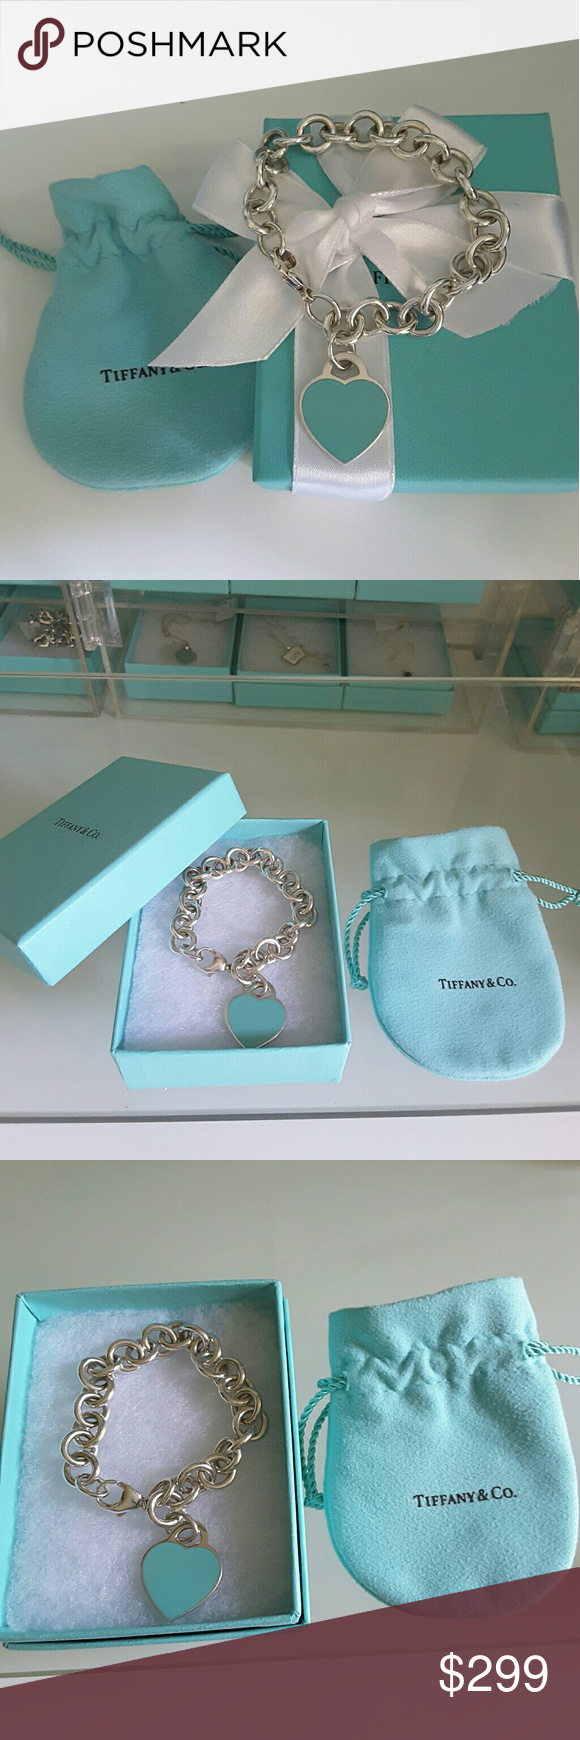 """Return to Tiffany&Co Blue enamel Heart Bracelet AUTHENTIC TIFFANY & CO. RETURN TO TIFFANY BLUE HEART CHARM BRACELET  Sterling silver 925 and Tiffany blue enamel  7 1/8""""  end to end   Hallmarks: PLEASE RETURN TO TIFFANY &CO NEW YOUR 925  Mint condition!  Includes Tiffany pouch, box, white ribbon, and Tiffany gift bag  #STN182 Tiffany & Co. Jewelry Bracelets"""